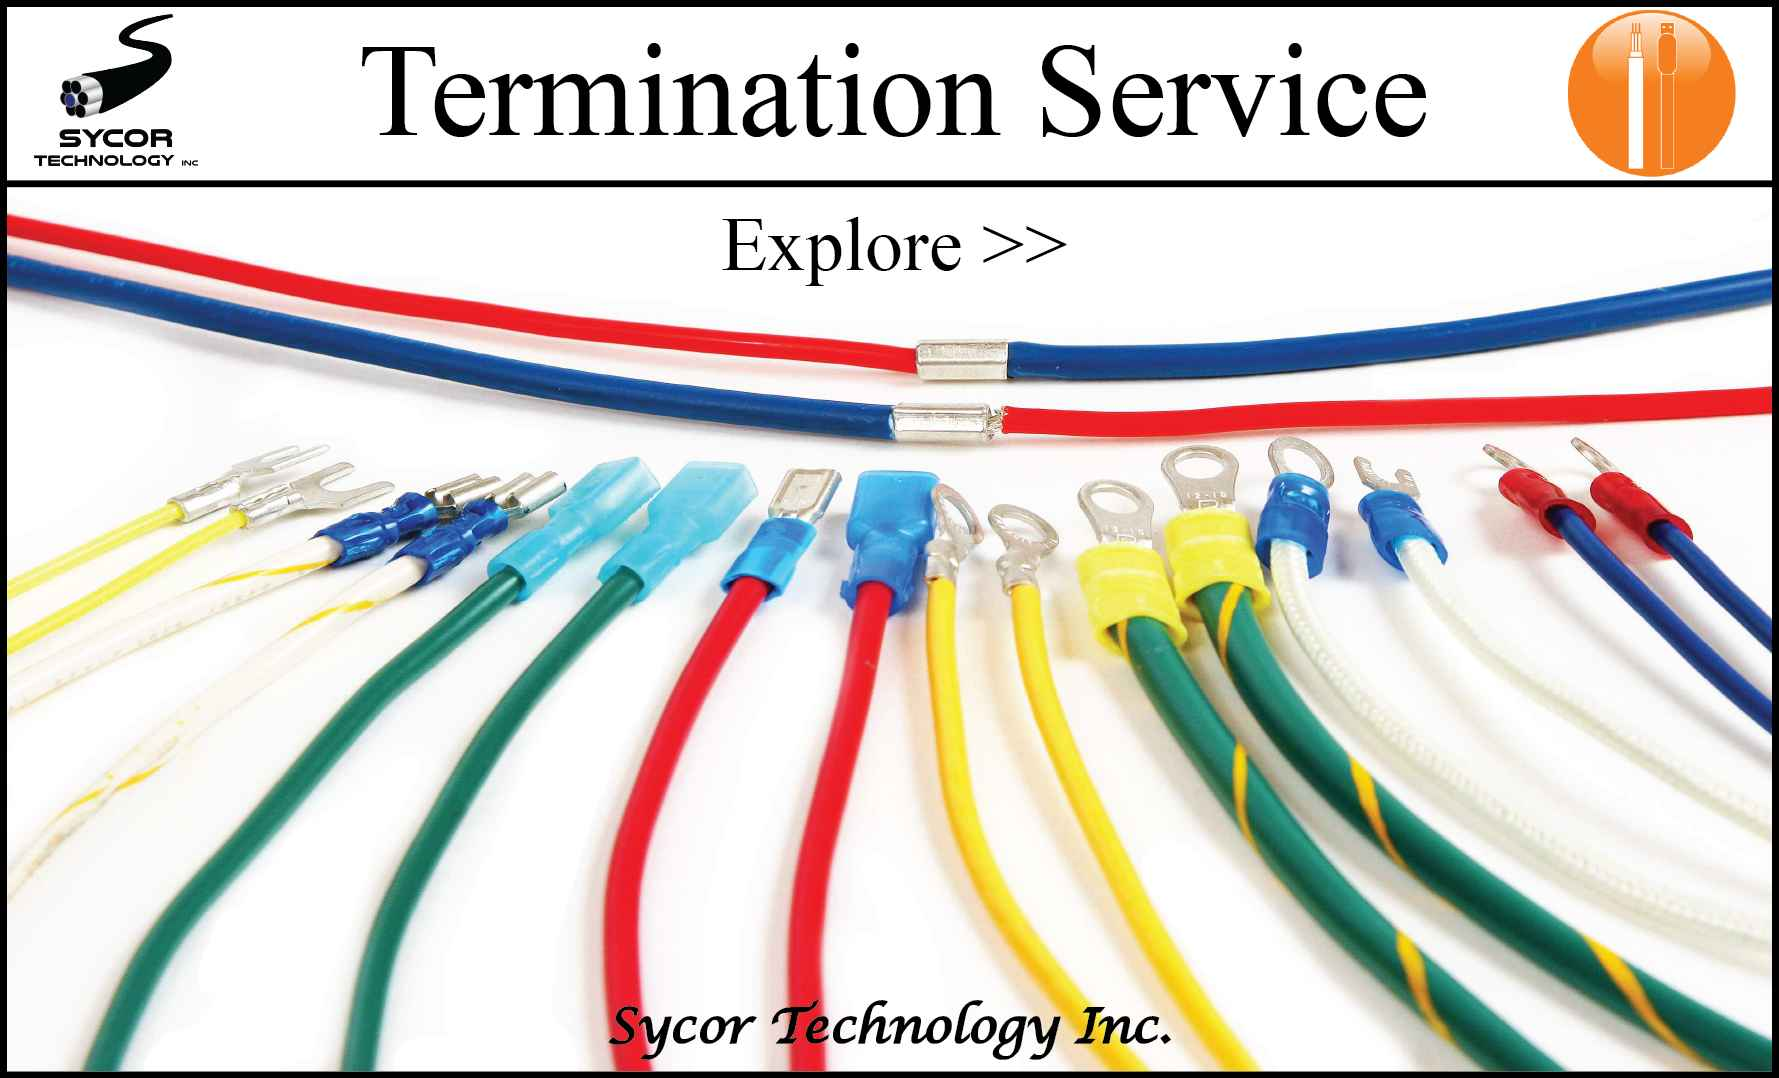 Cable Assembly Termination Capabilities